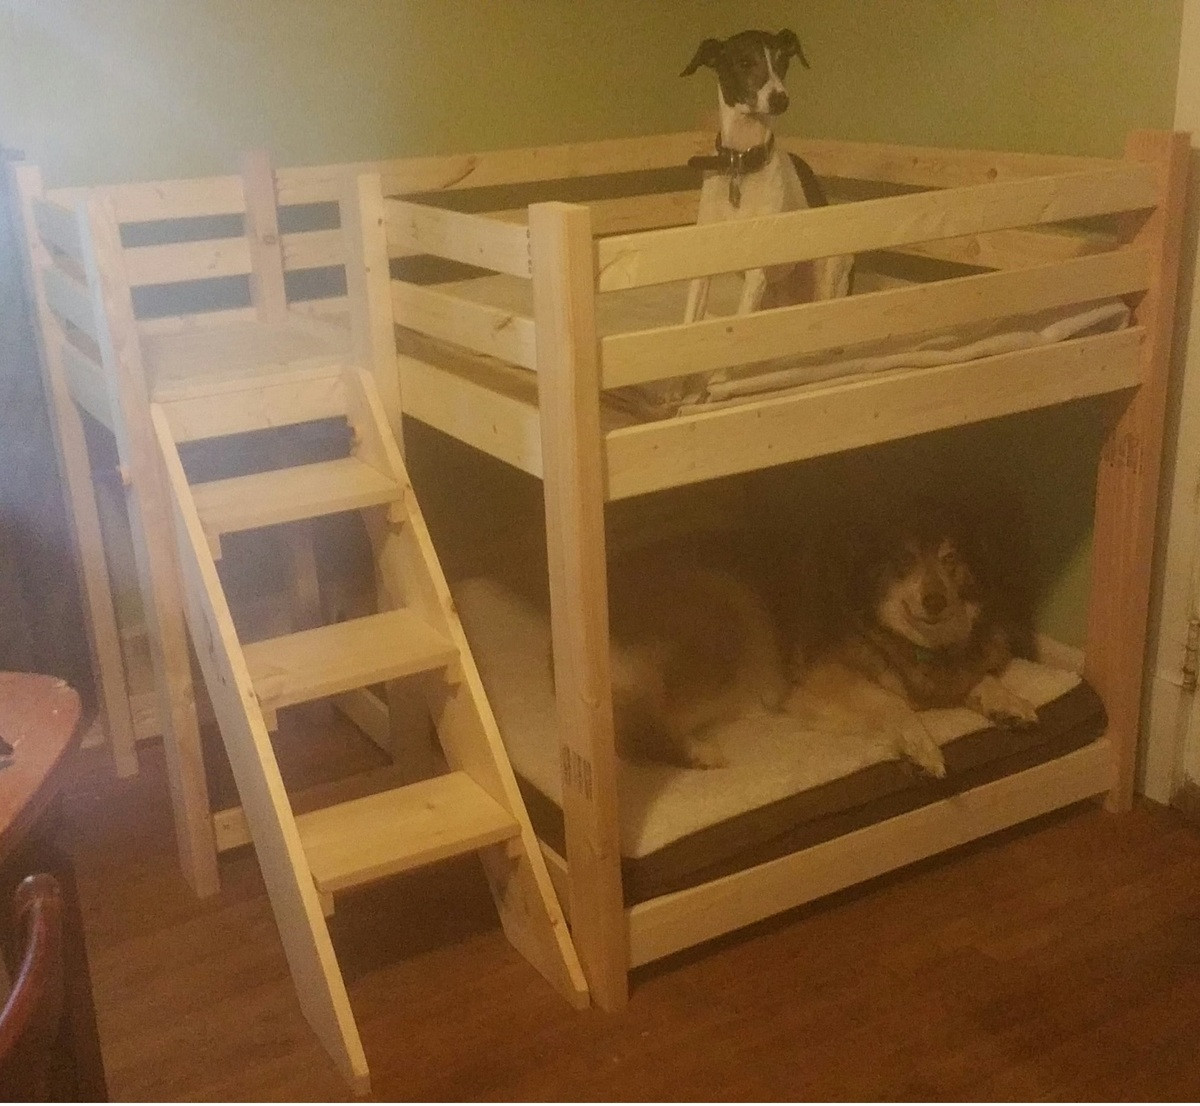 Best ideas about DIY Dog Bunk Bed . Save or Pin Ana White Now.